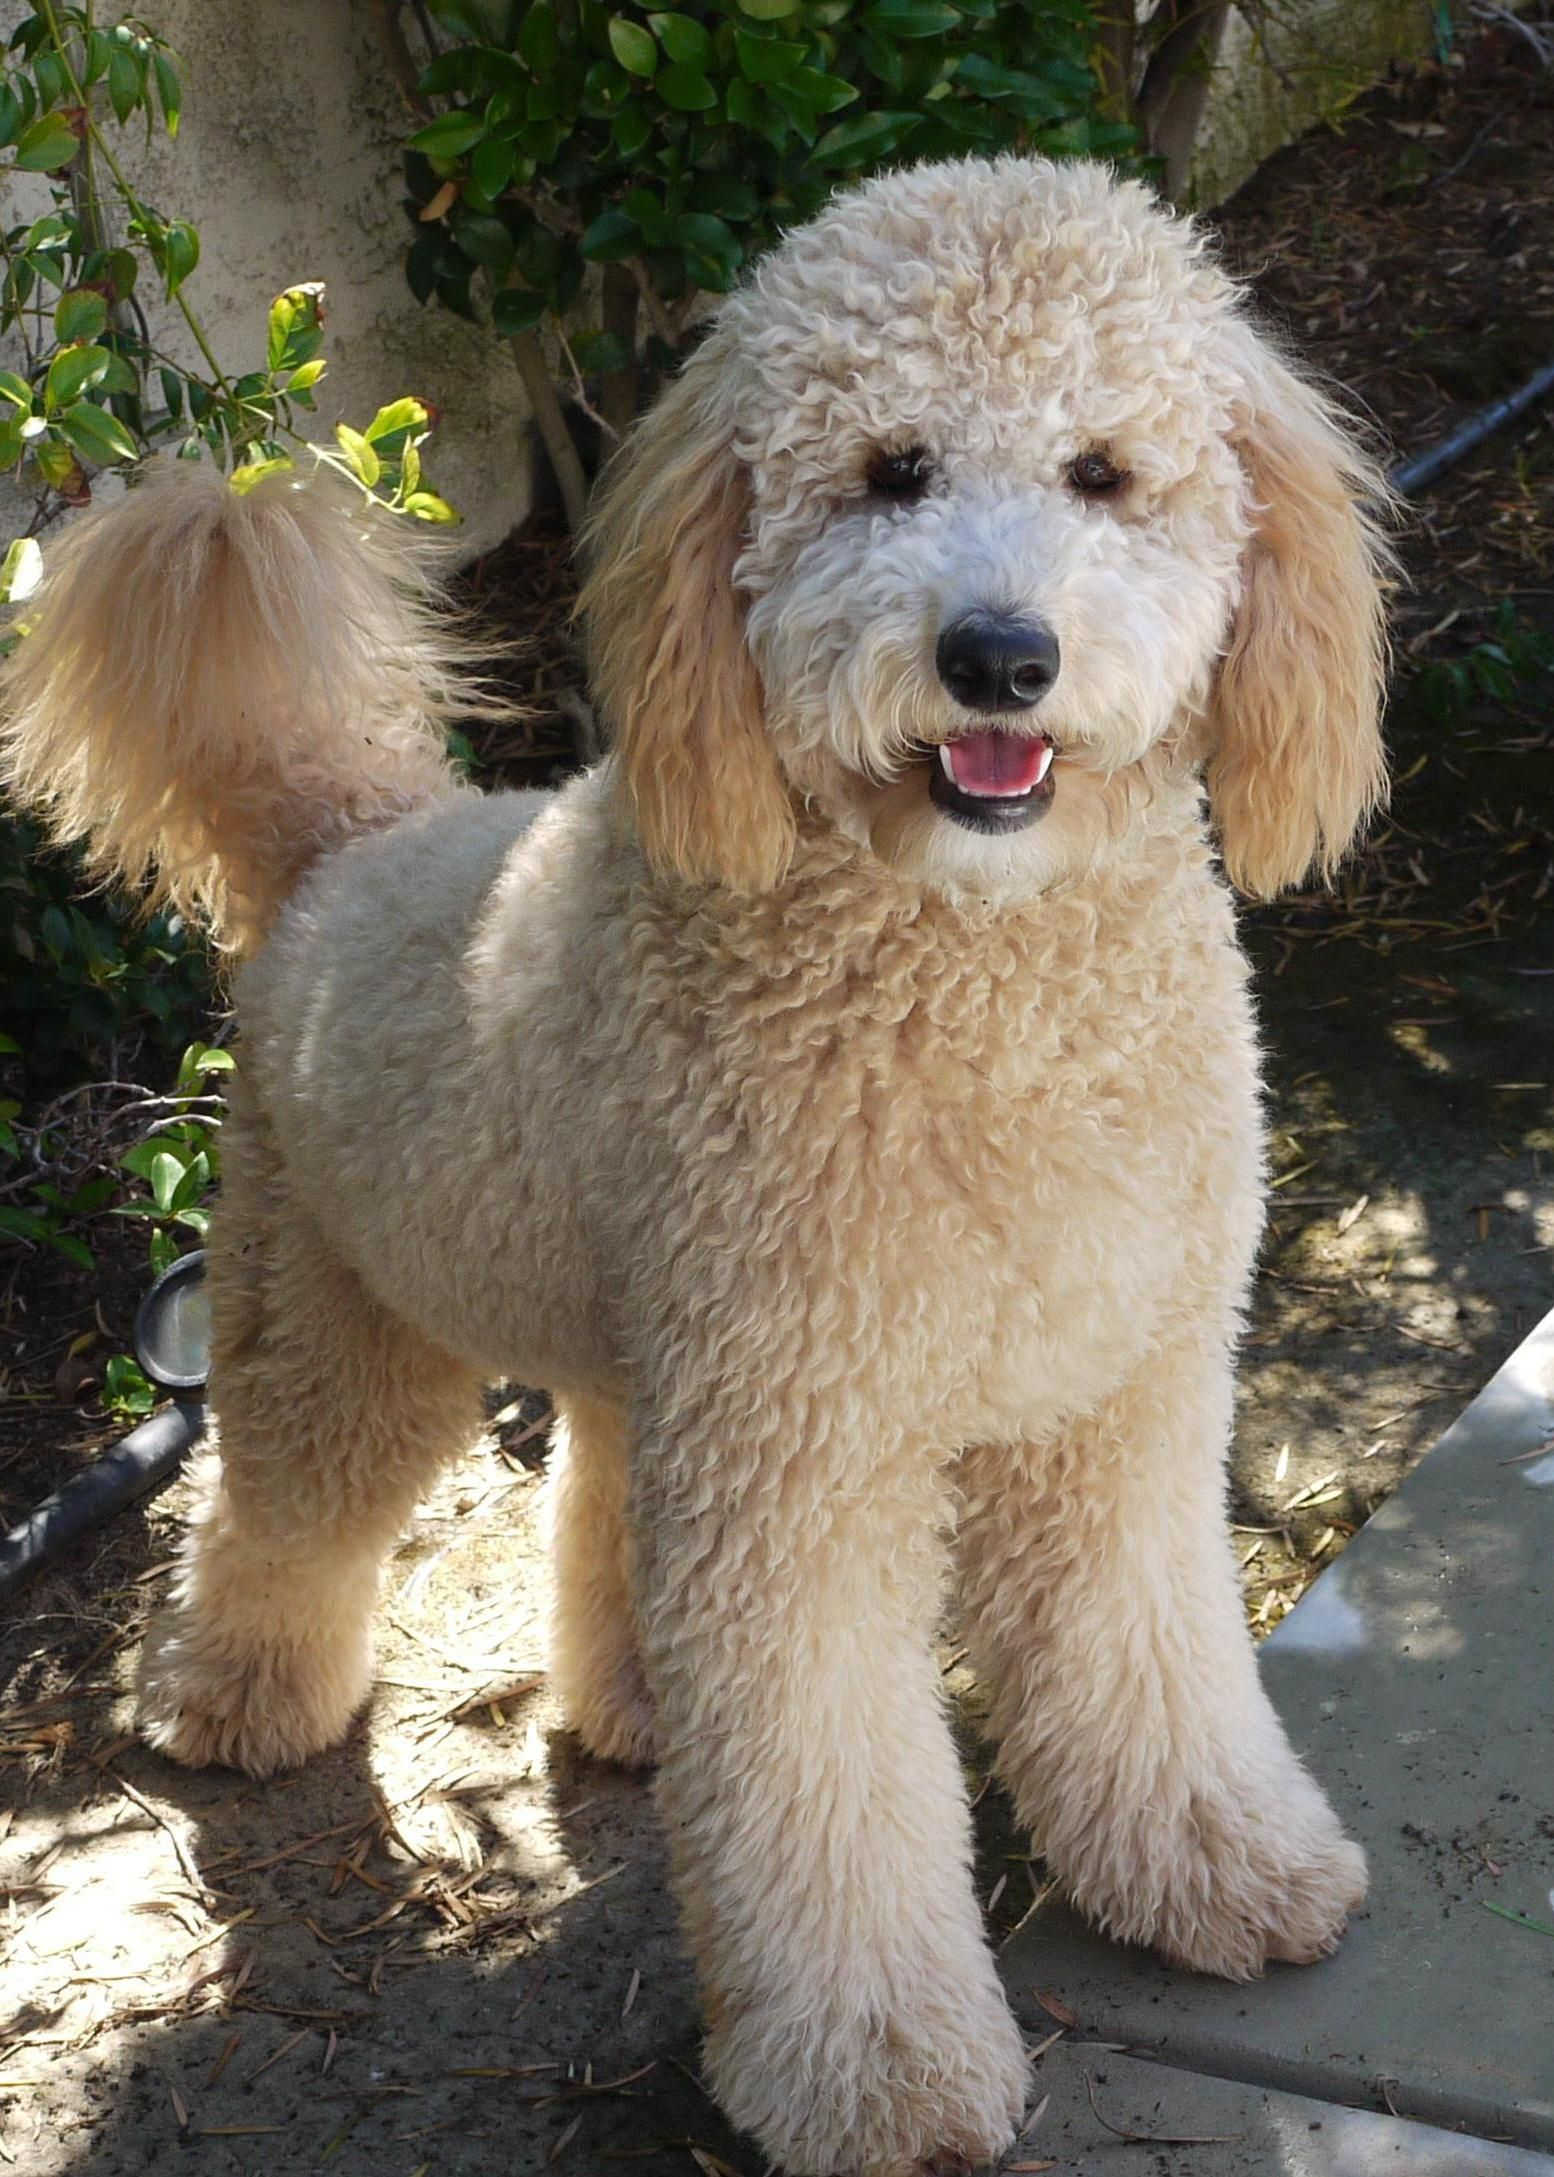 River Doodles Home Raised Goldendoodle Bernedoodle Puppies Of Orange County California Mini Goldendoodles Bernedoodle Puppy Healthiest Dog Breeds Pets